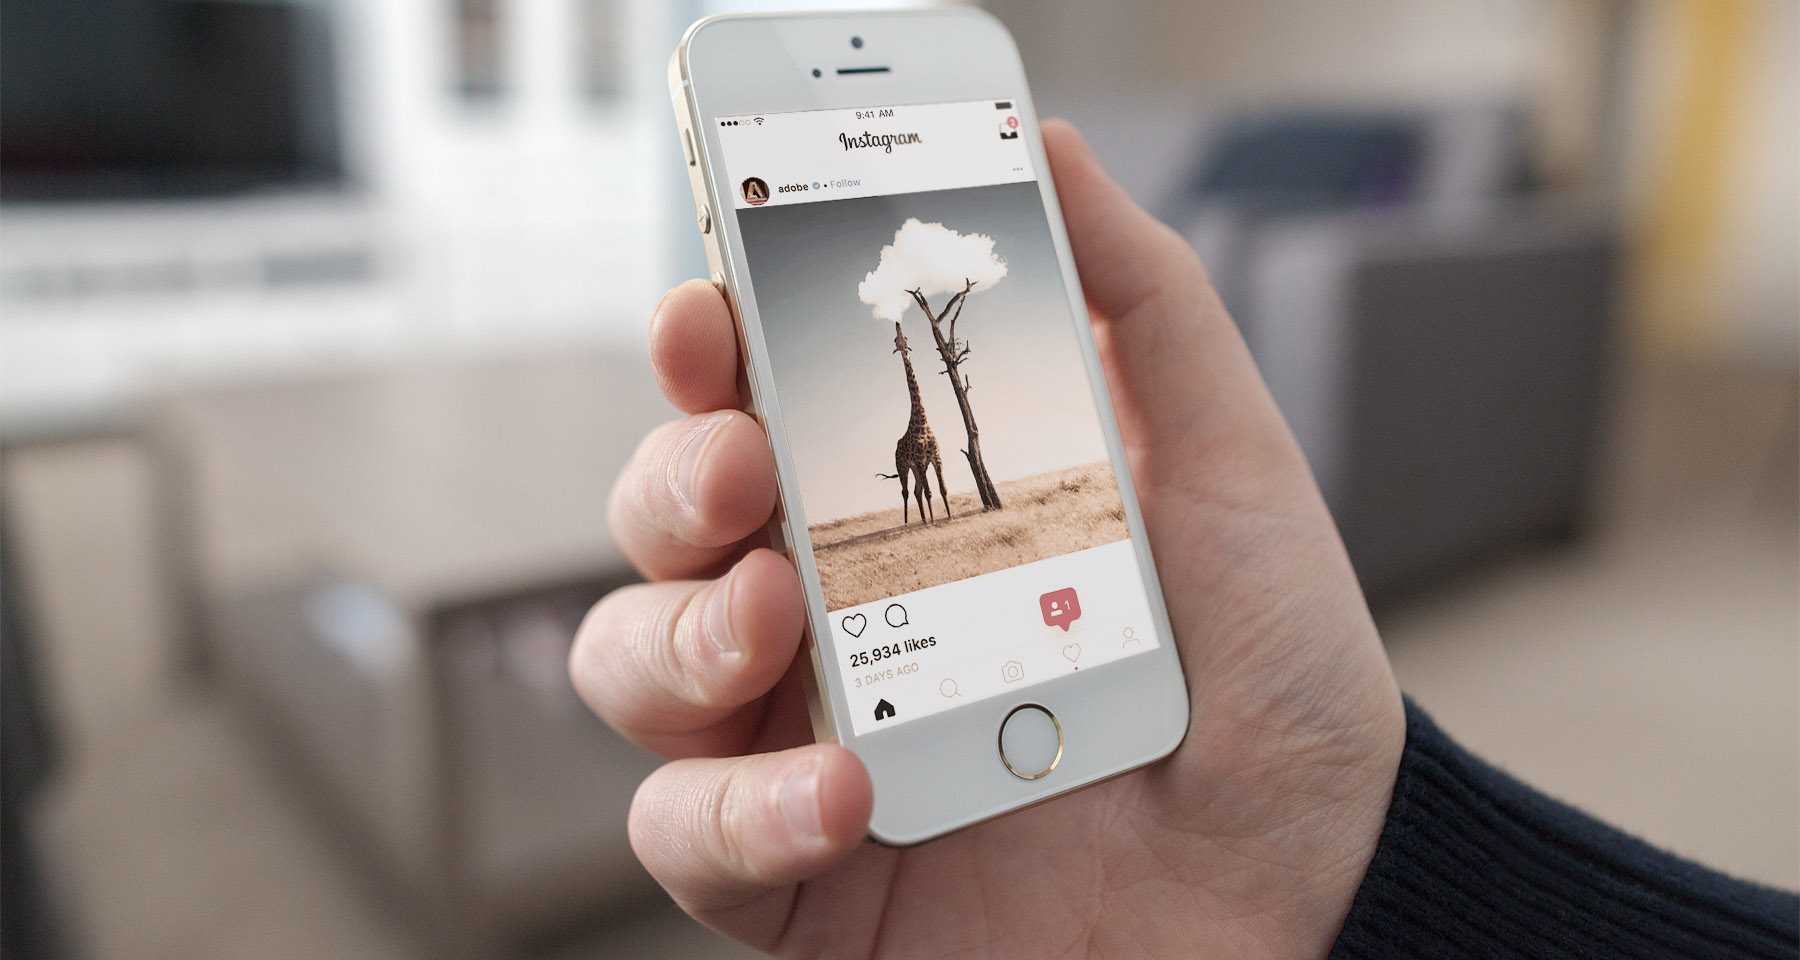 From frequency to discoverability, 7 tips for Instagram success